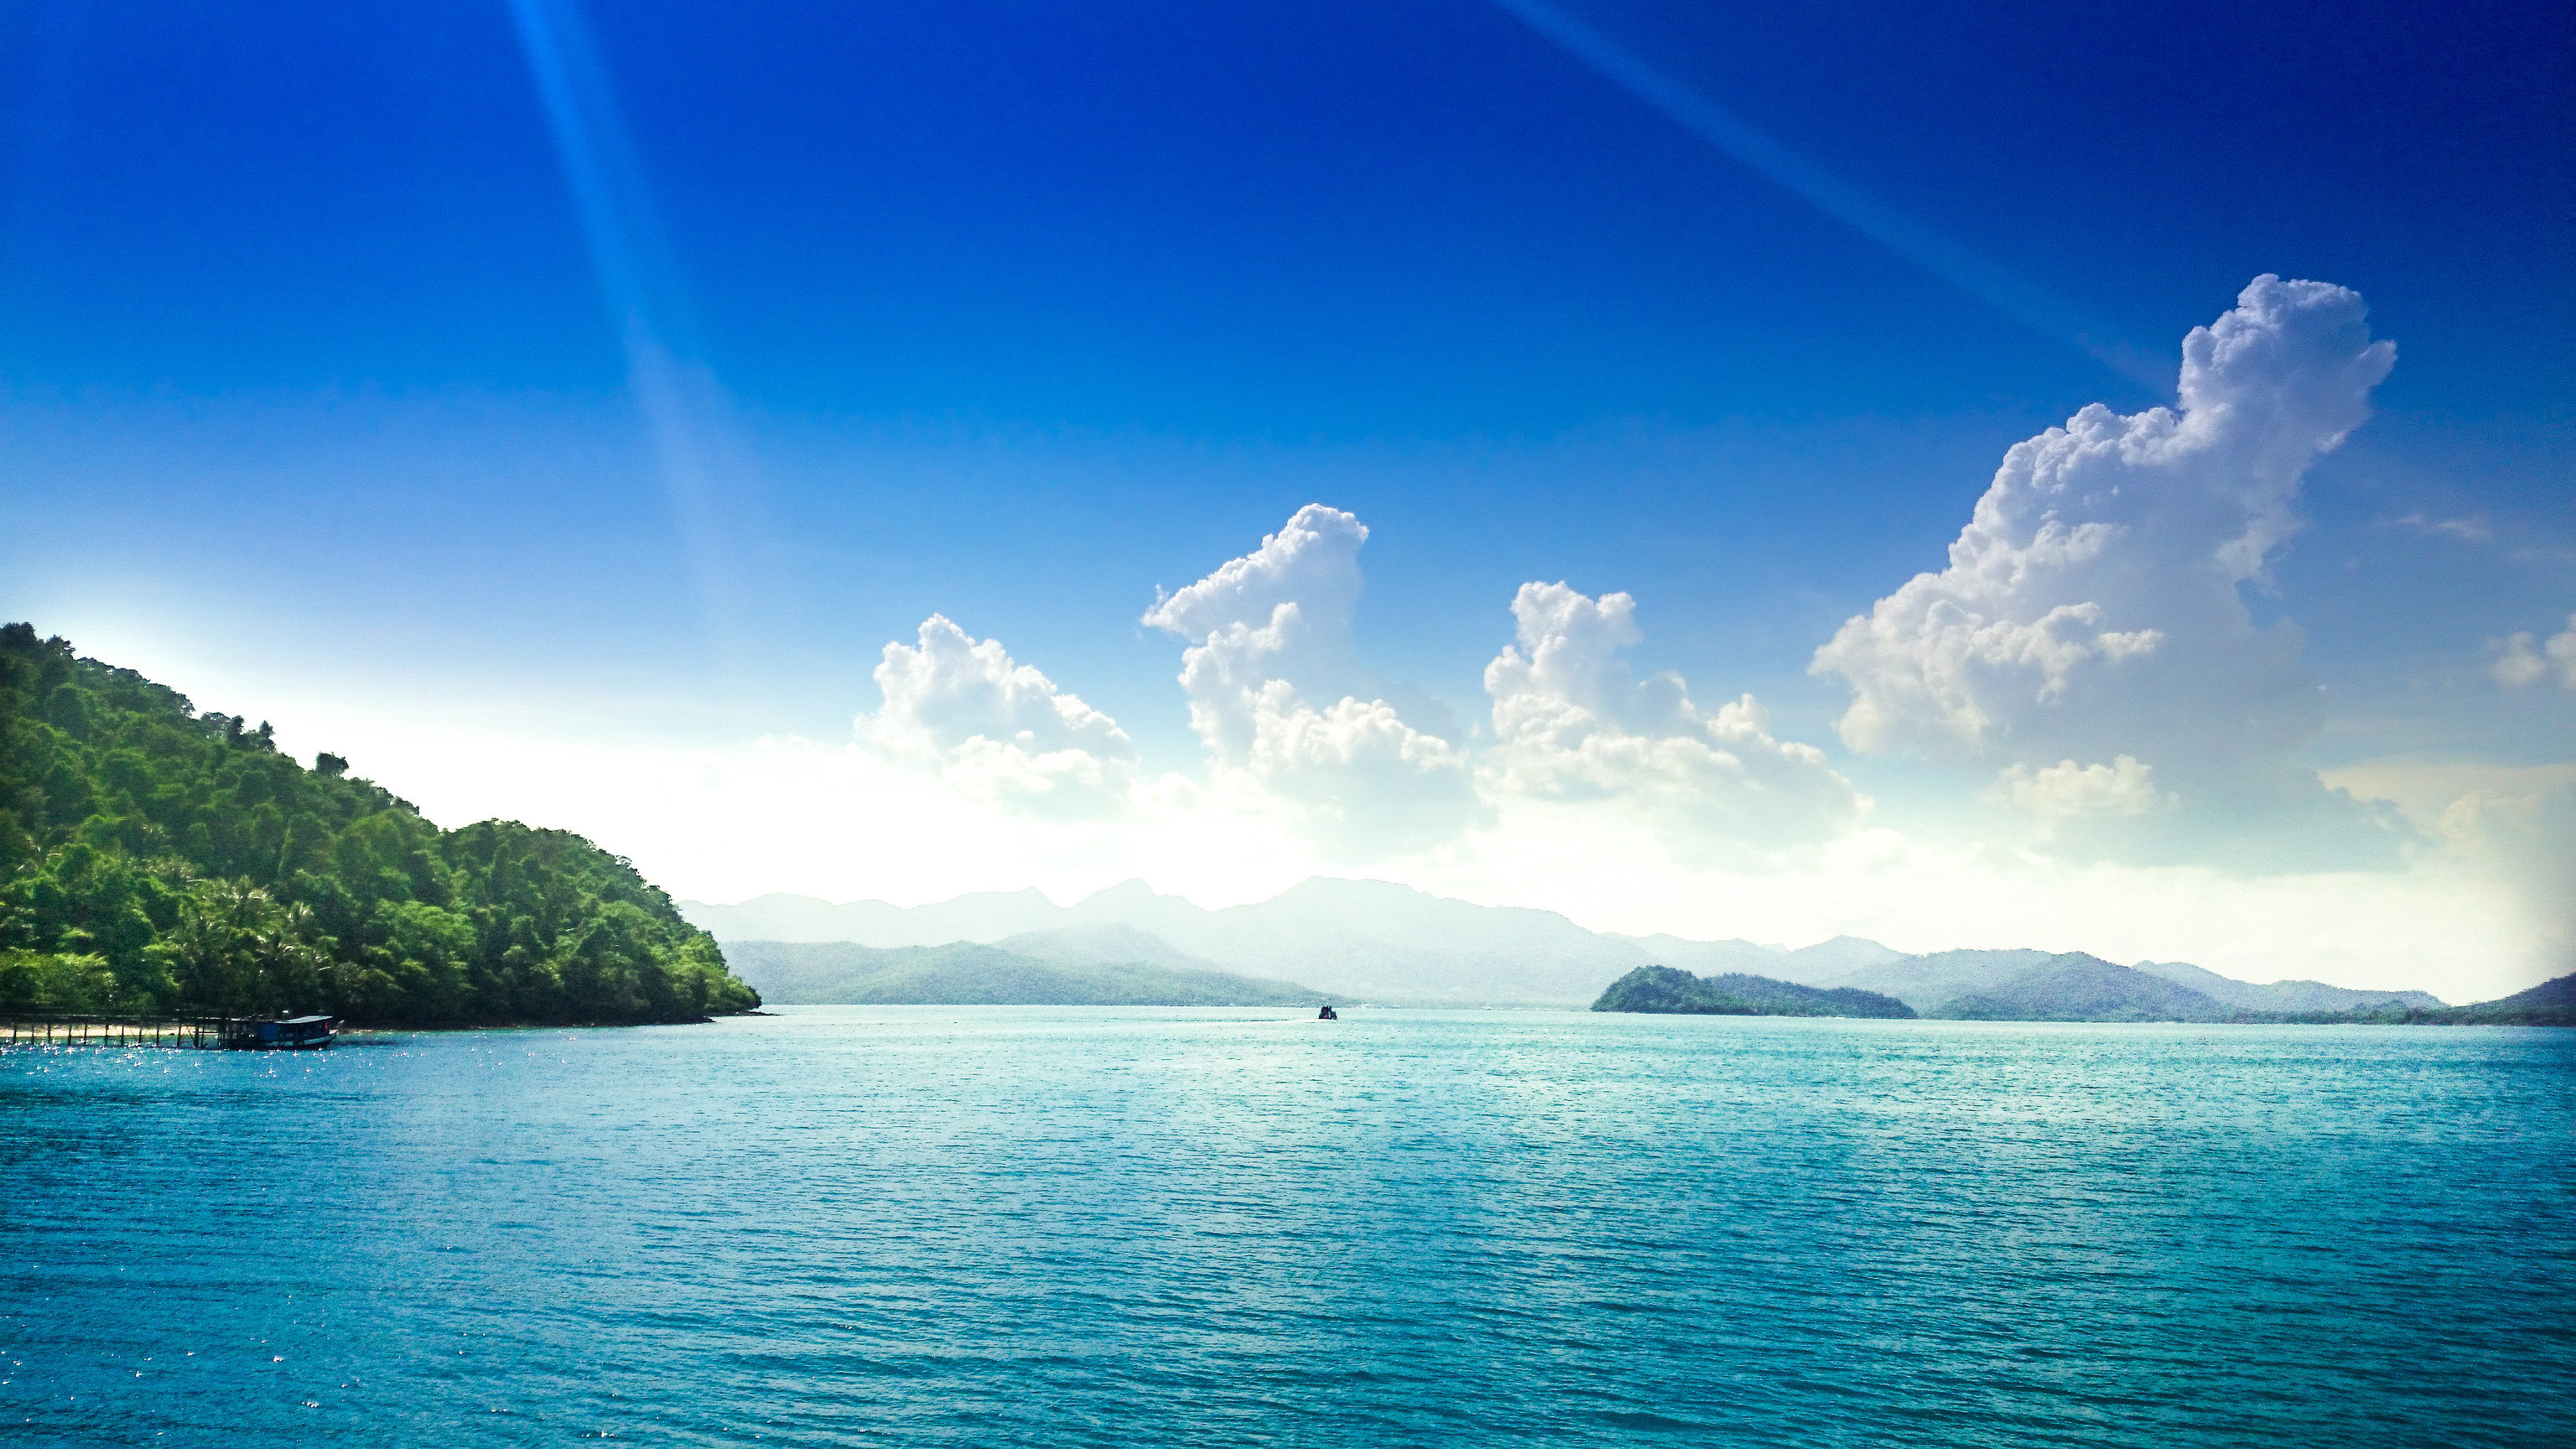 Jetsetter Guides water sky outdoor Boat Lake Nature mountain horizon cloud Sea body of water Ocean reflection fjord background sunlight bay loch blue computer wallpaper Island dusk Lagoon clouds day shore distance surrounded